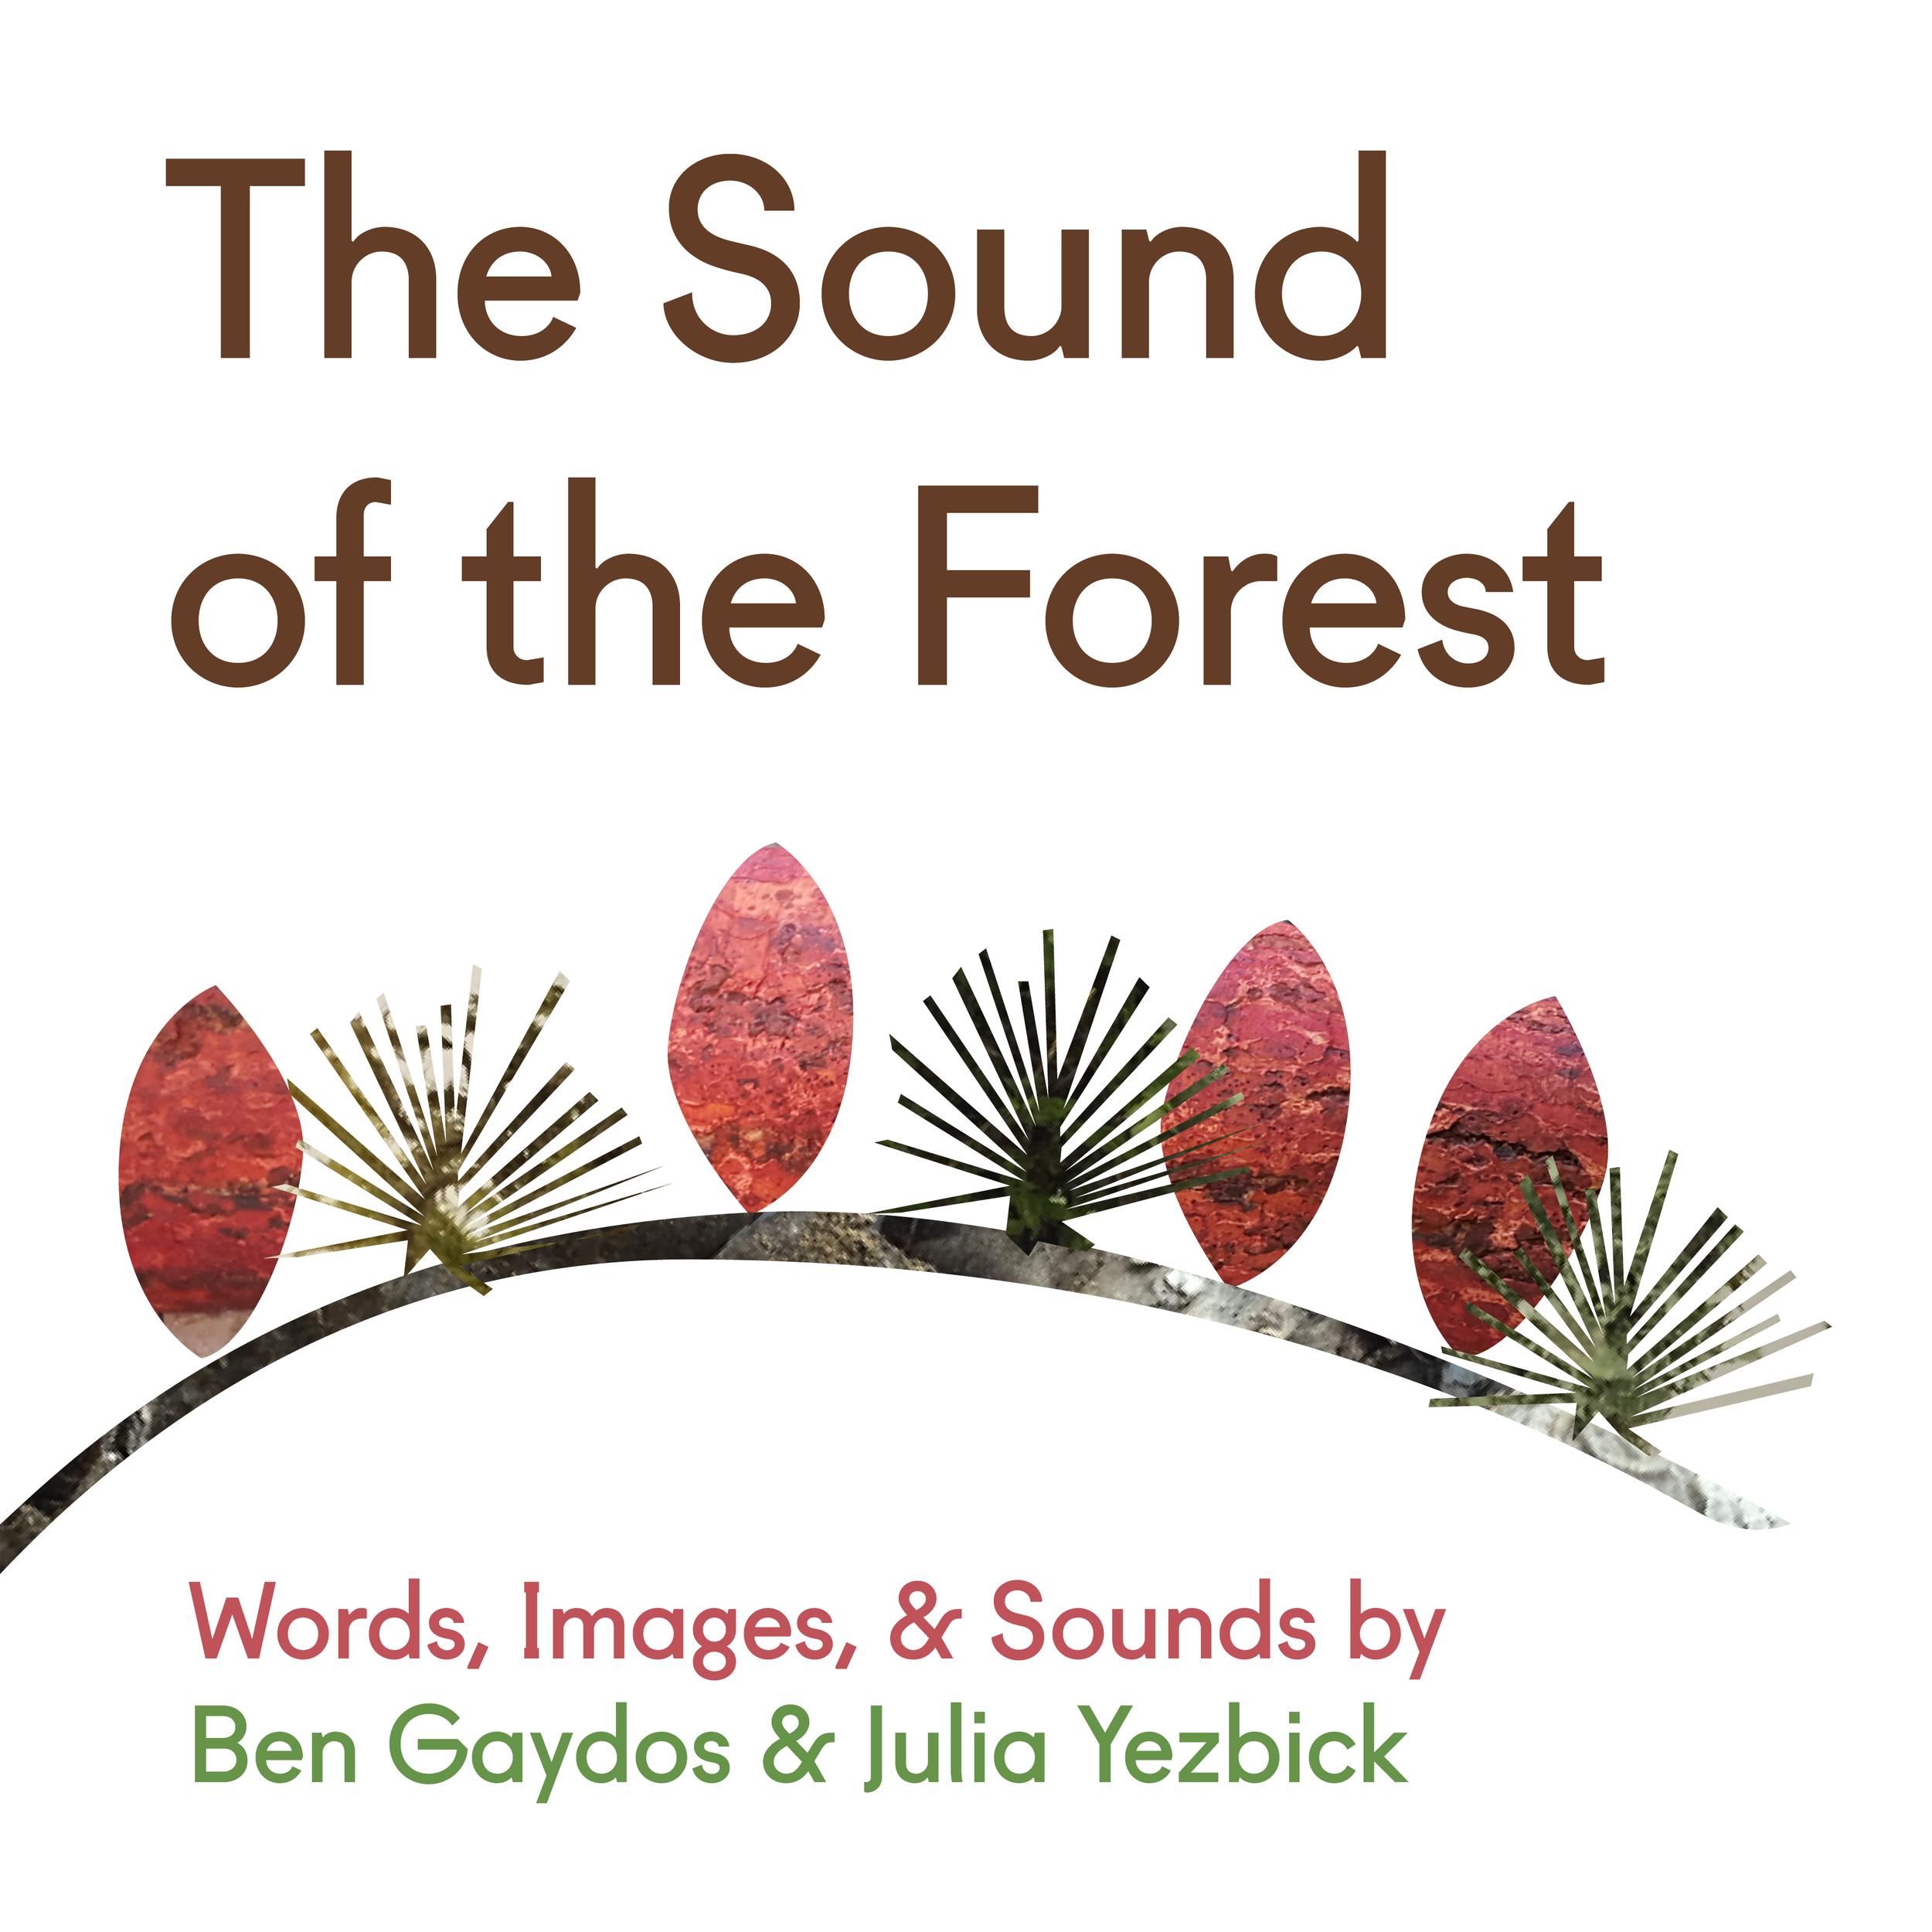 TheSoundoftheForest_BoardBook_2.png